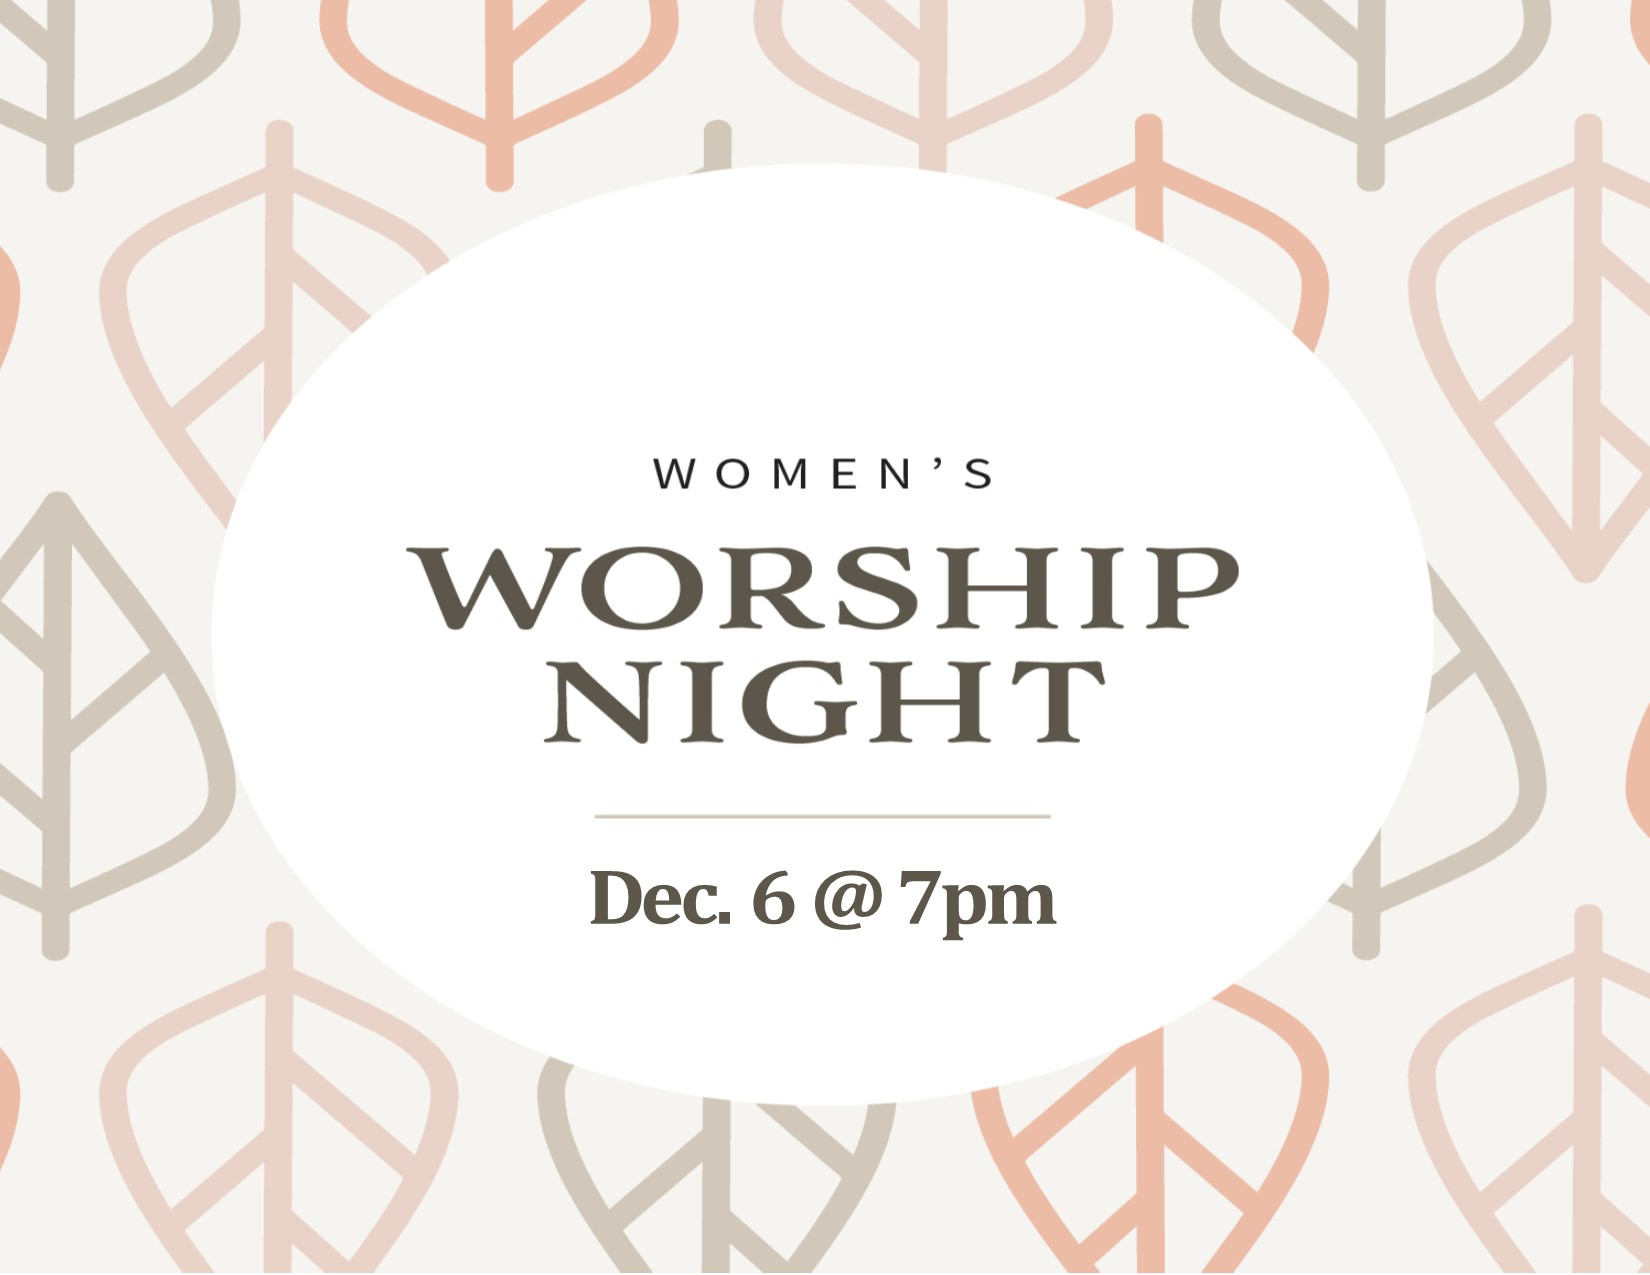 Women's worship night image